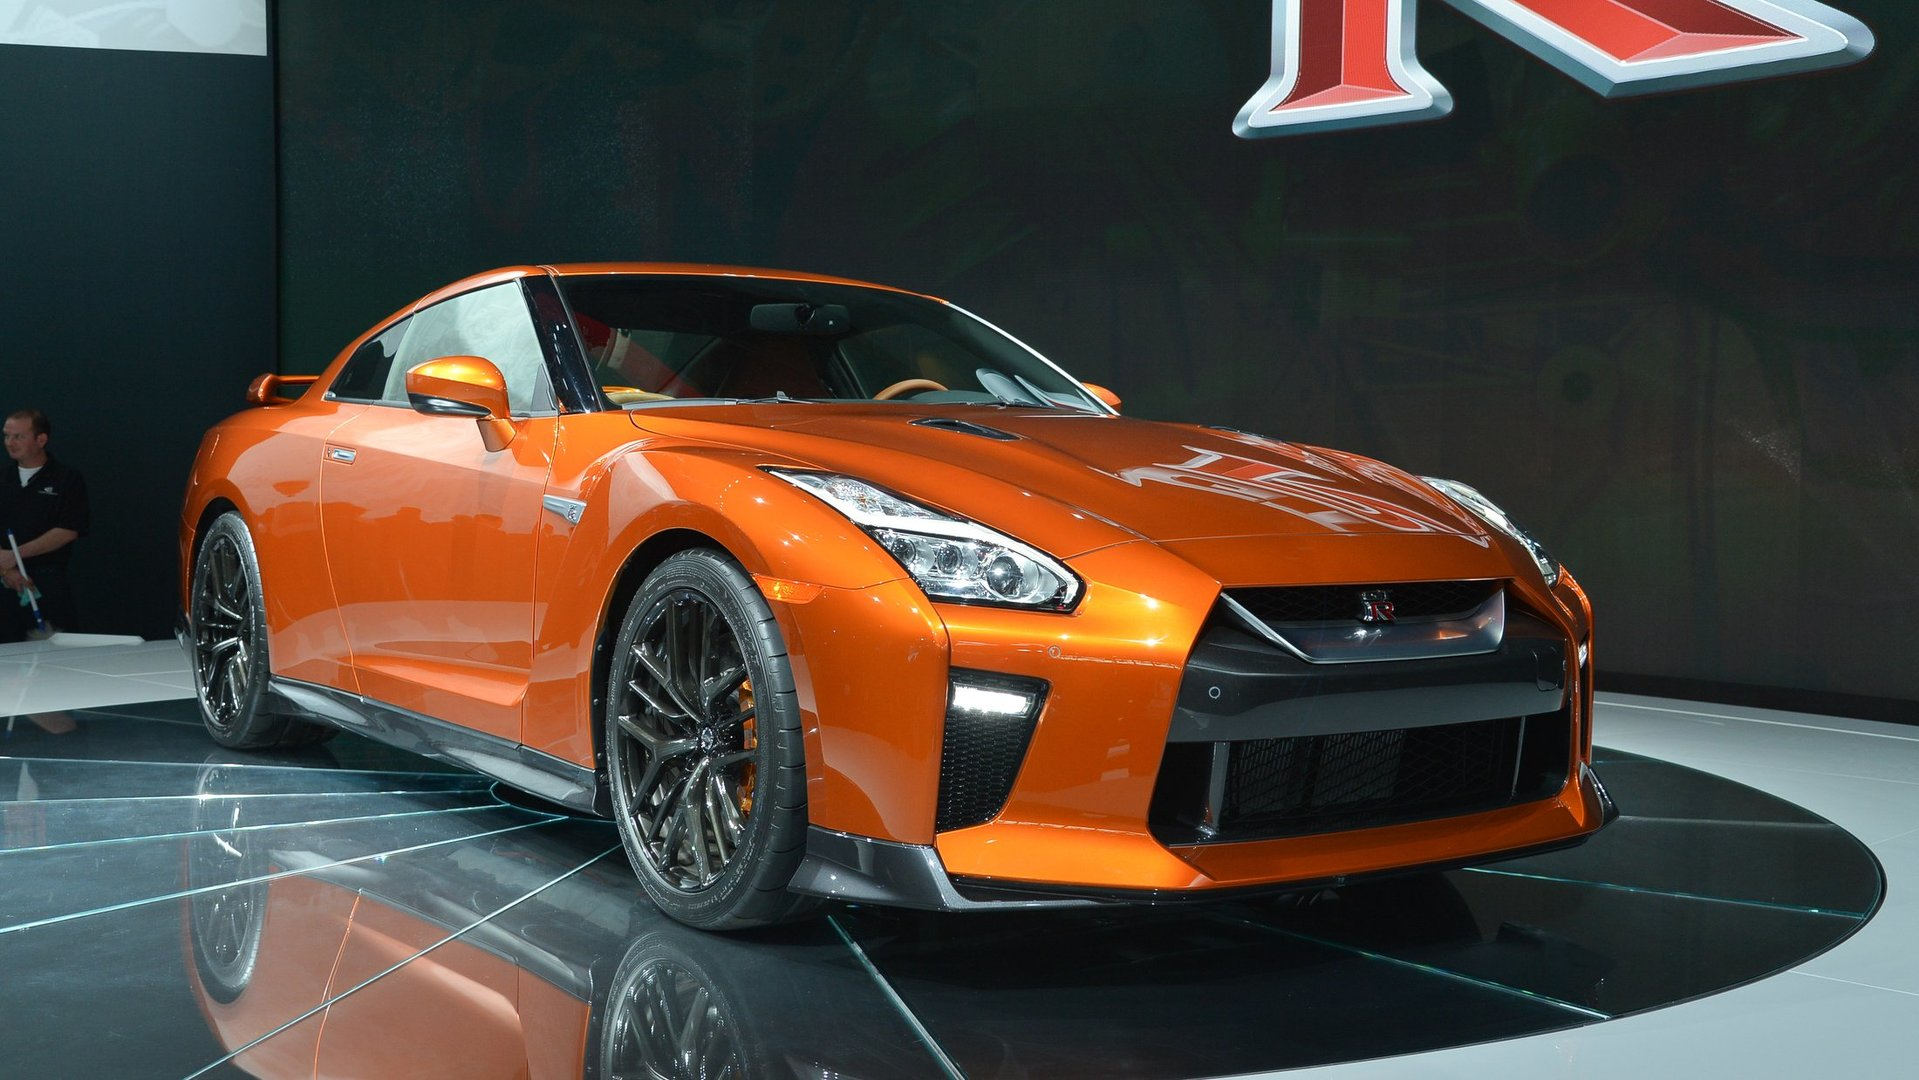 2017 nissan gt r races into new york with 565 hp. Black Bedroom Furniture Sets. Home Design Ideas